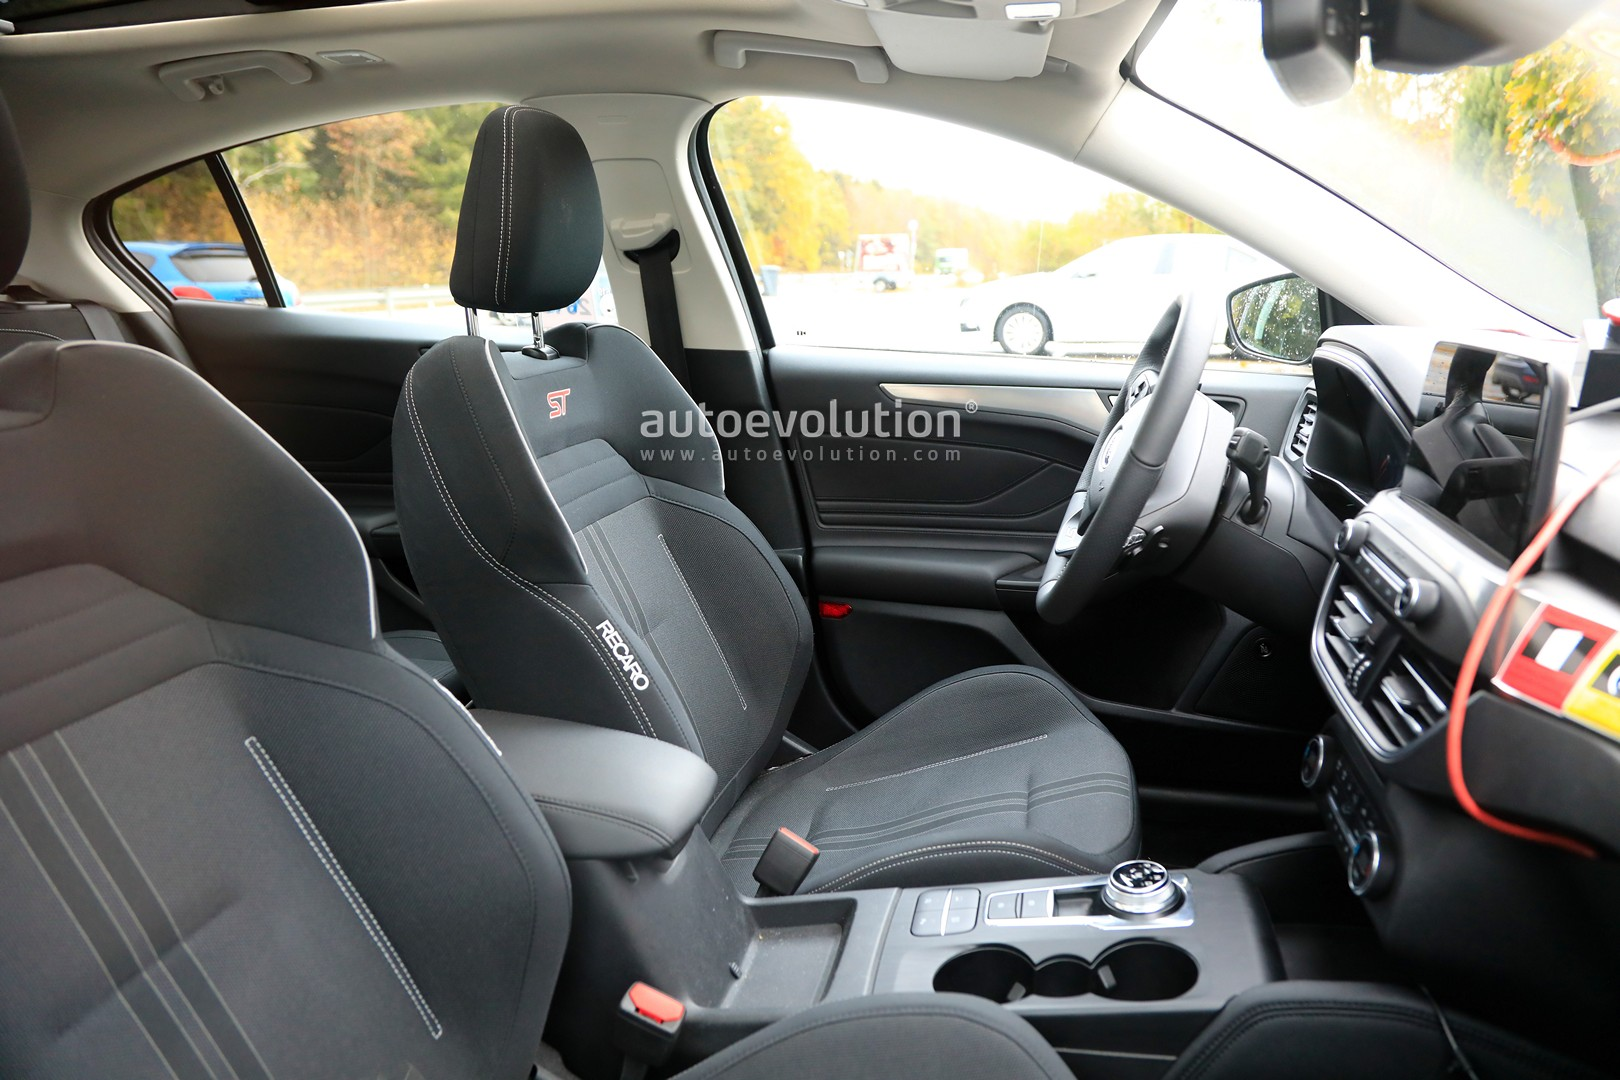 New Ford Focus St Interior Revealed 2 3l Engine Has Automatic Gearbox